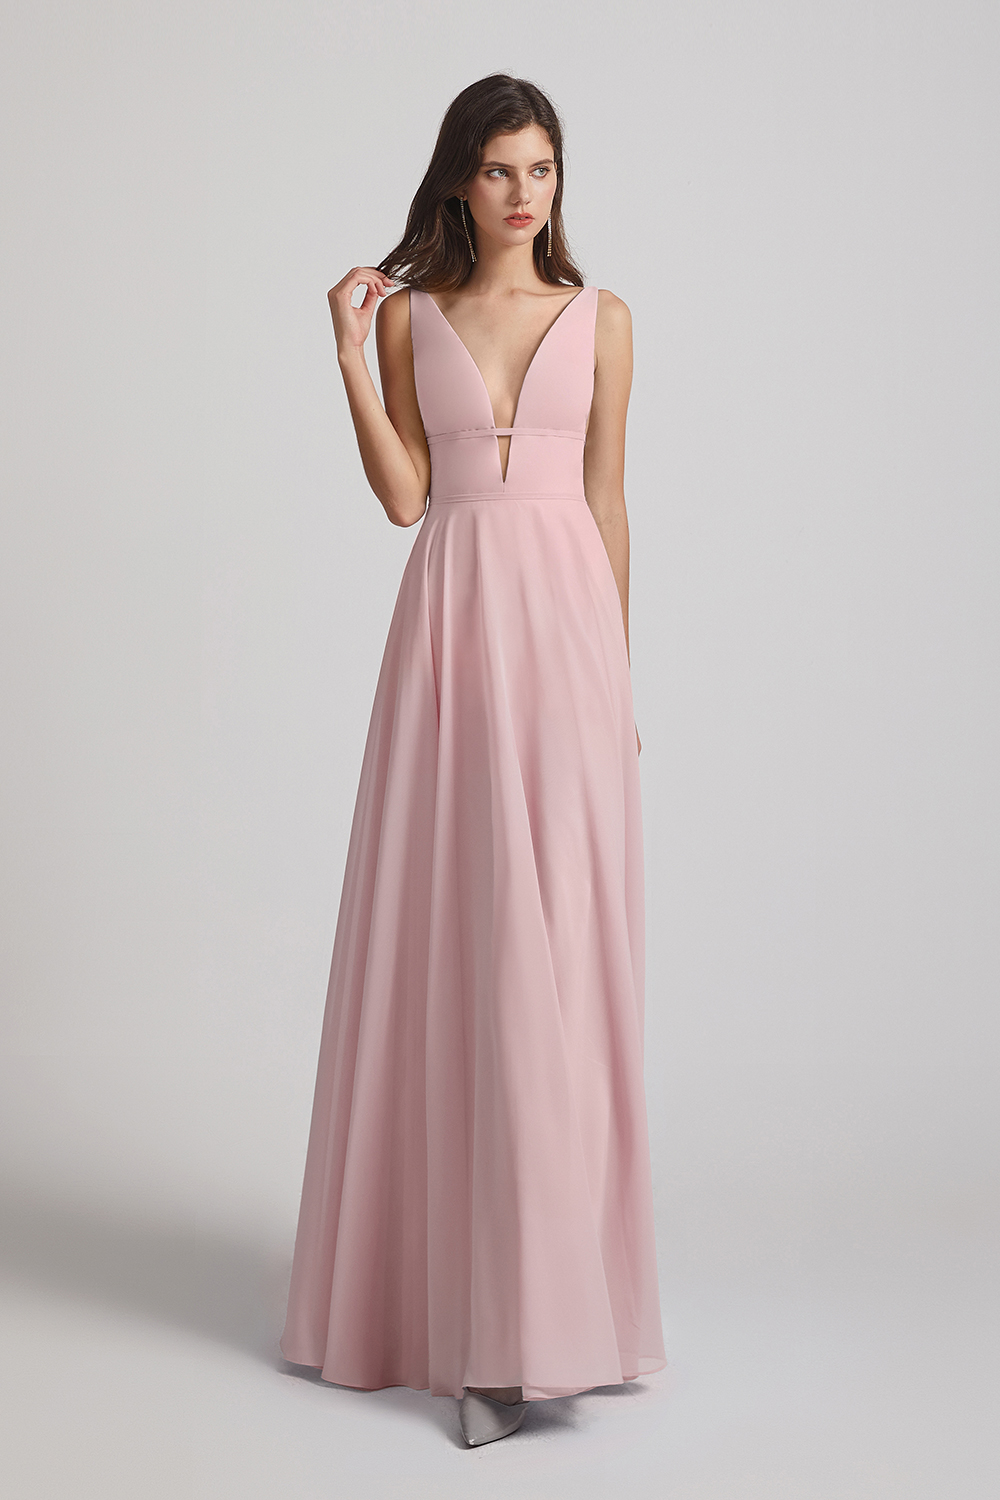 The Best Under $100 Bridesmaid Dresses For This Wedding Season